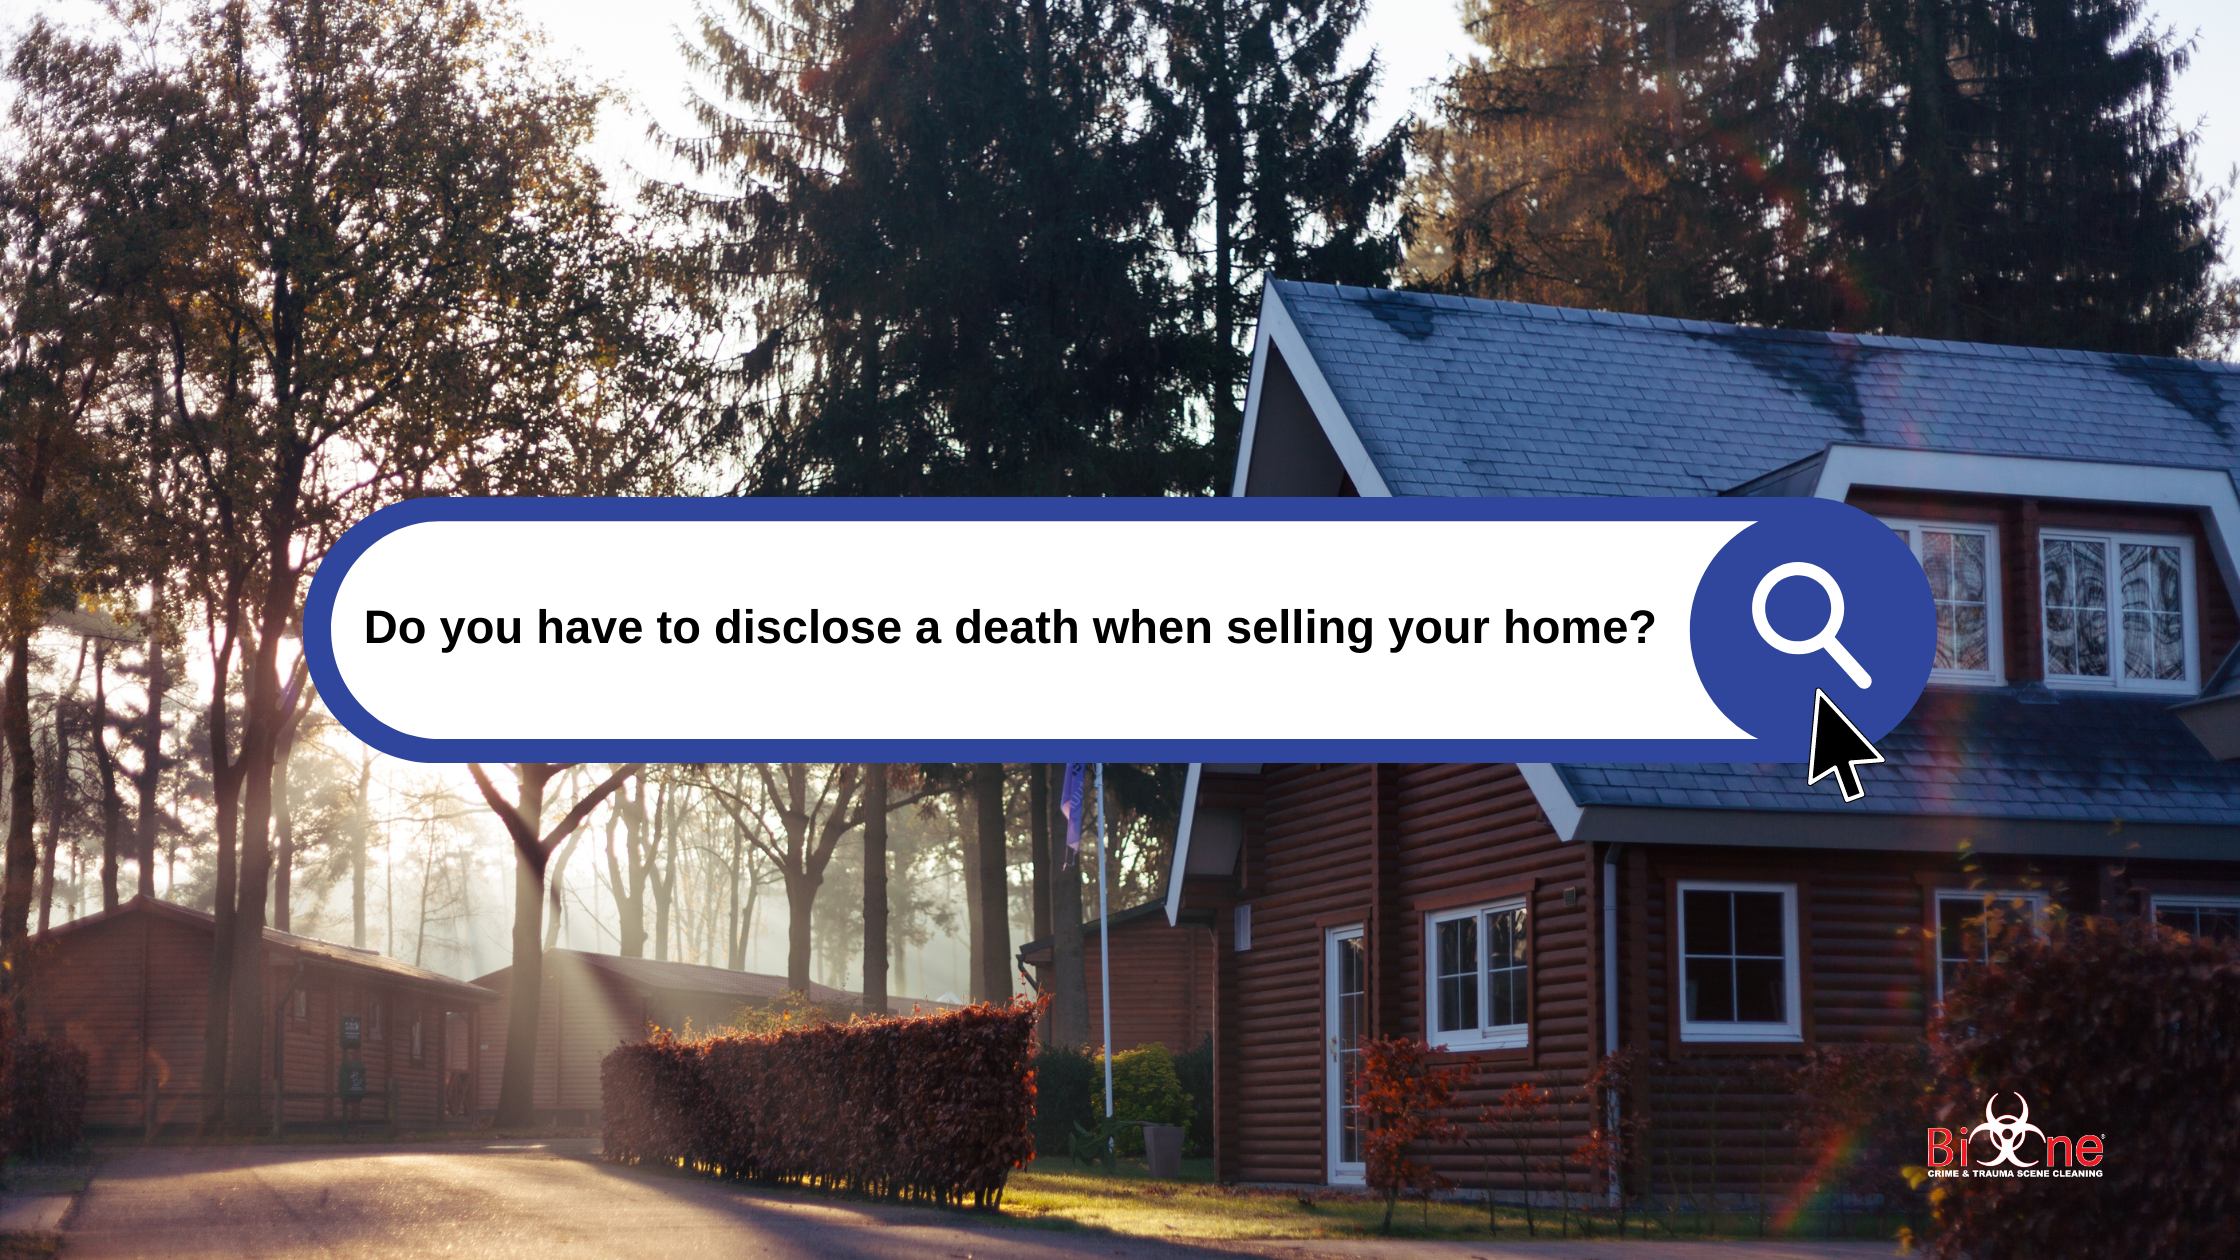 Do you have to disclose a death when selling your home?